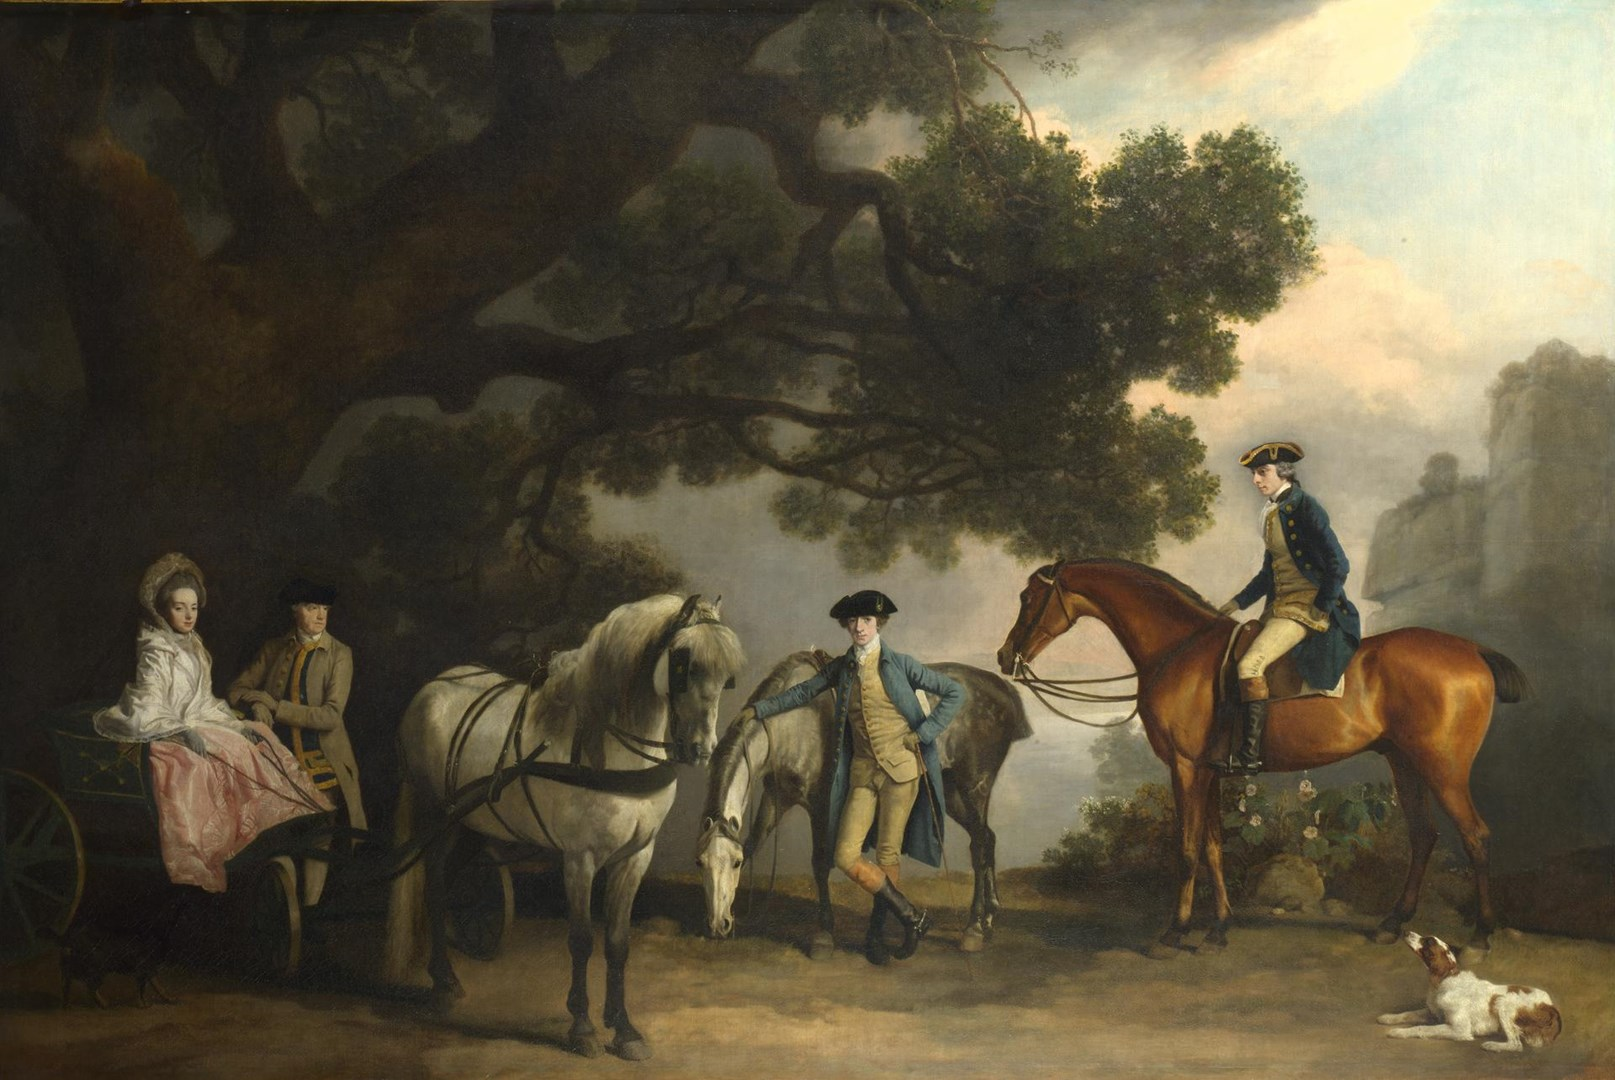 The Milbanke and Melbourne Families by George Stubbs